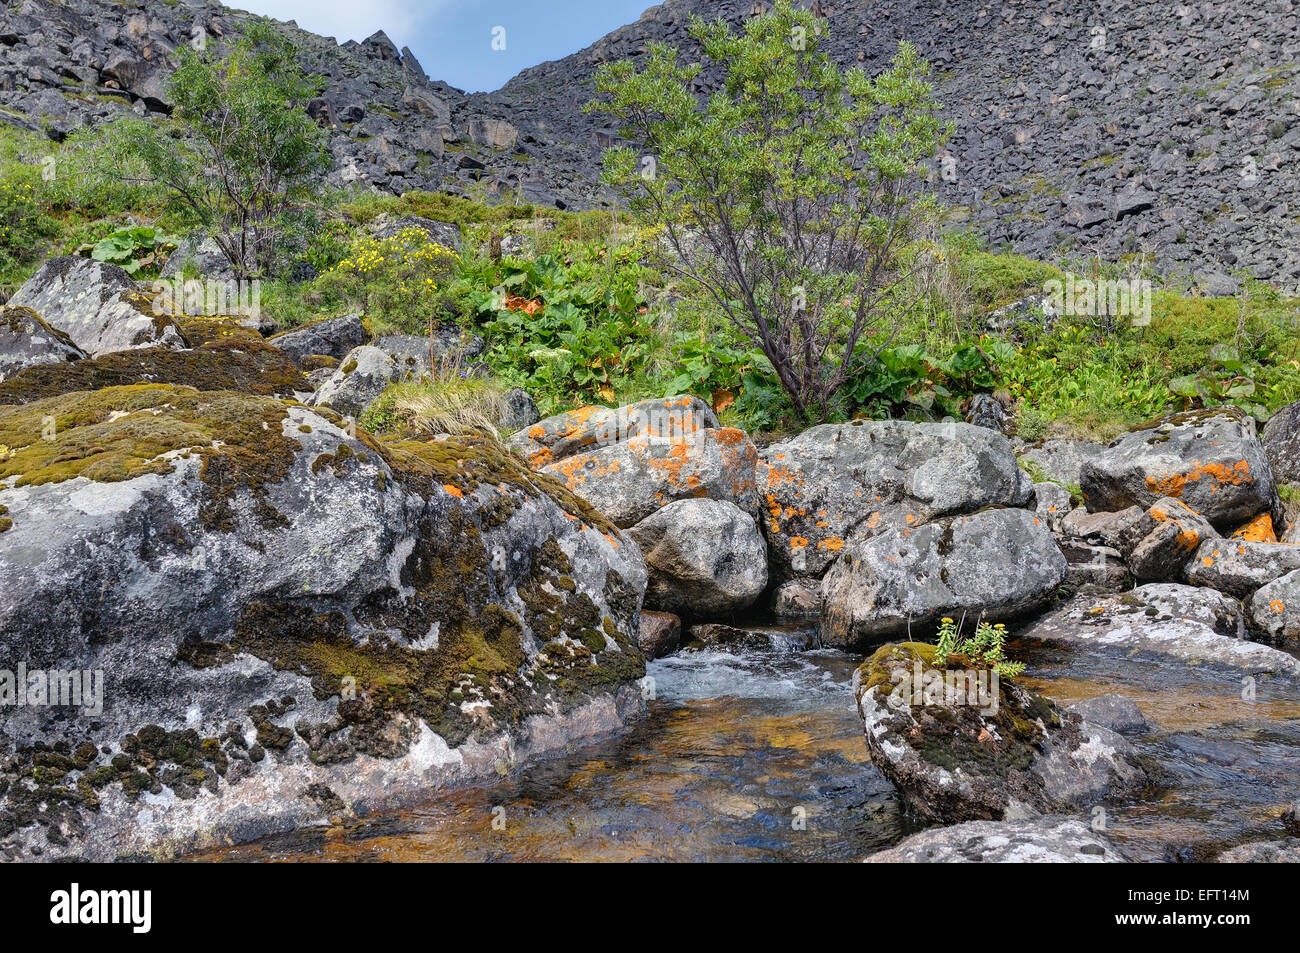 Rhodiola rosea (arctic root) growing on a rock in a mountain stream. Eastern Siberia Stock Photo